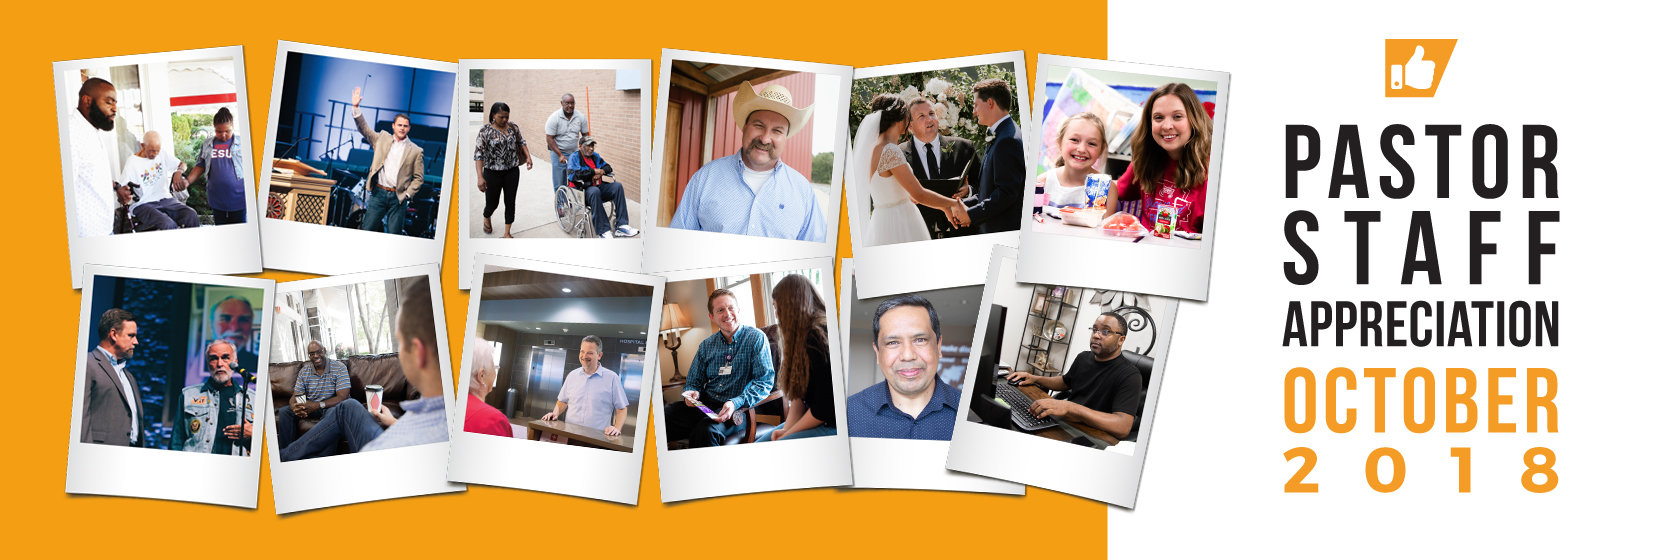 October is Pastor-Staff Appreciation month! Click here for ideas to thank them.